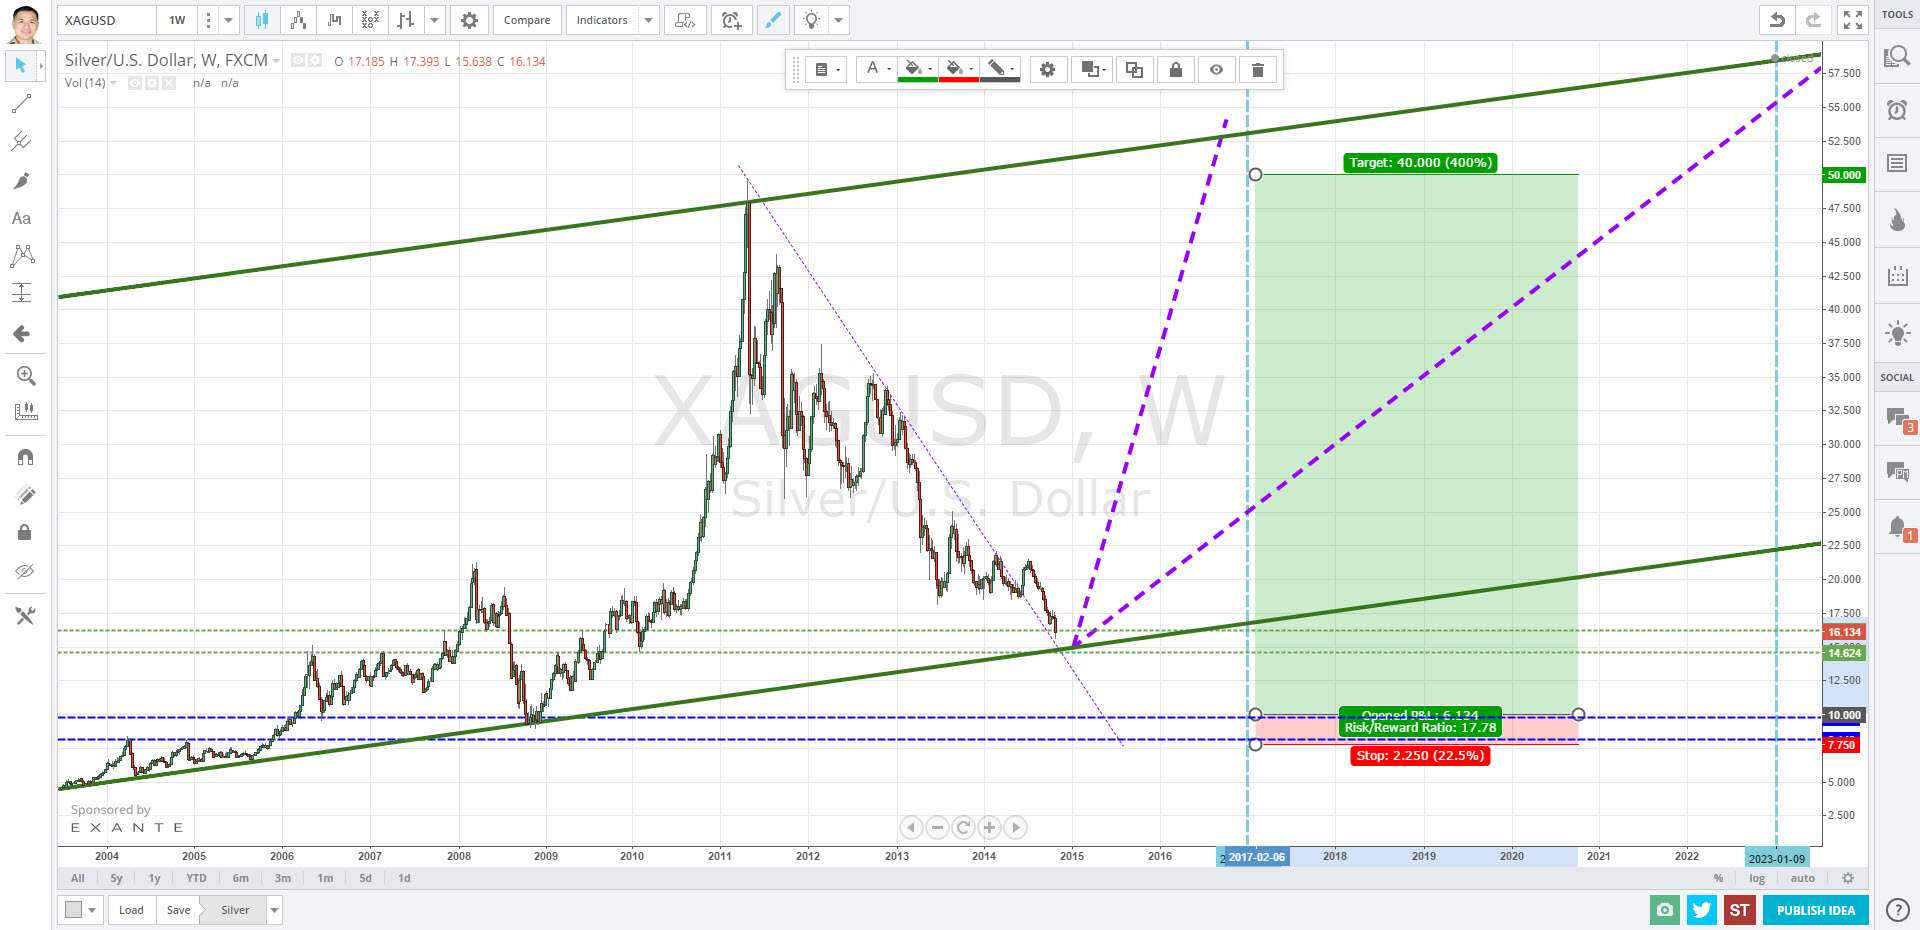 When is the best time to buy silver? 2